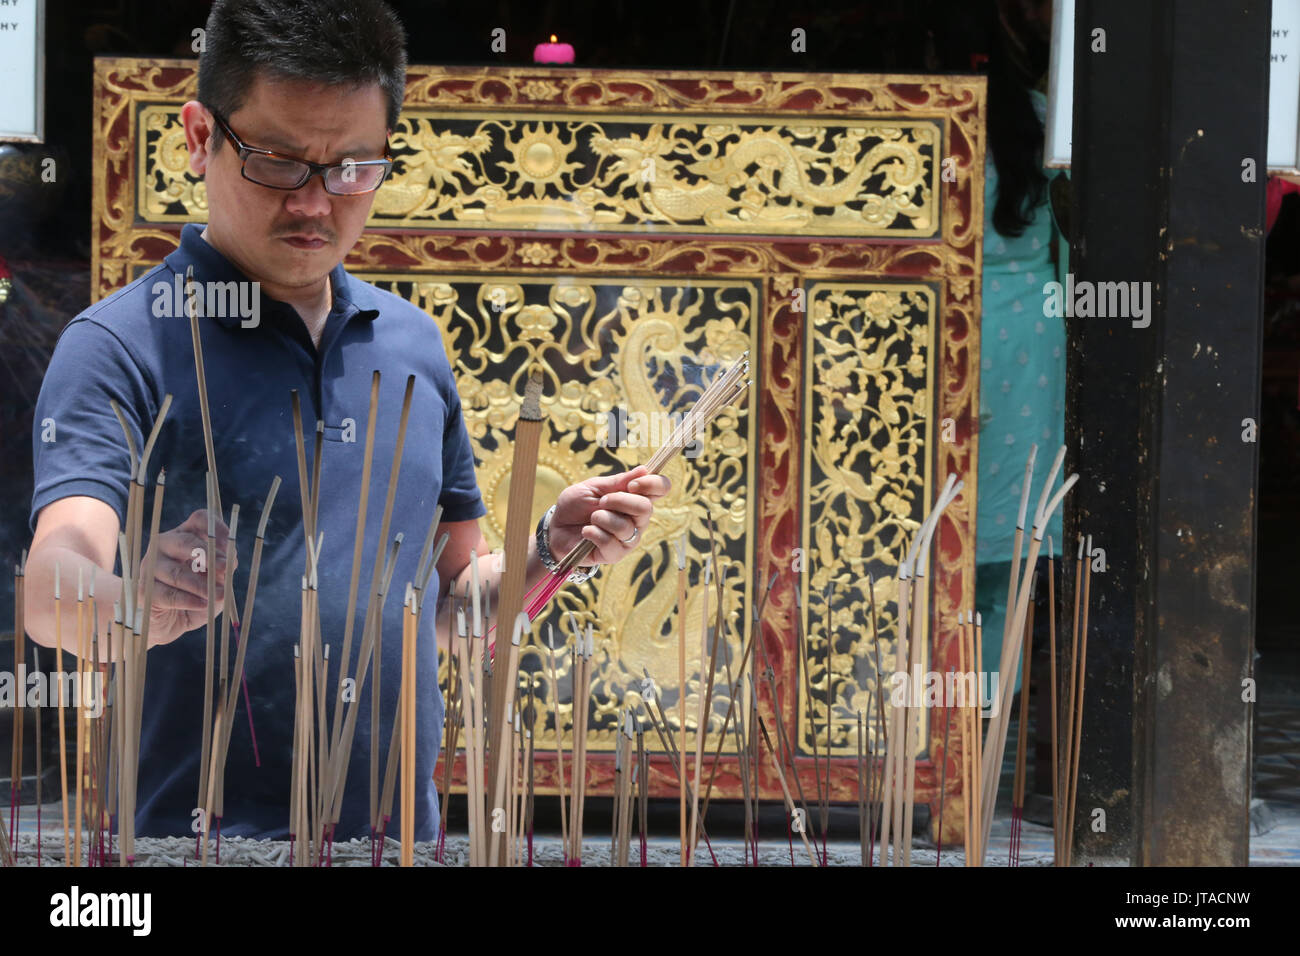 A Chinese man praying and offering incense, Thian Hock Keng Temple, Singapore, Southeast Asia, Asia - Stock Image